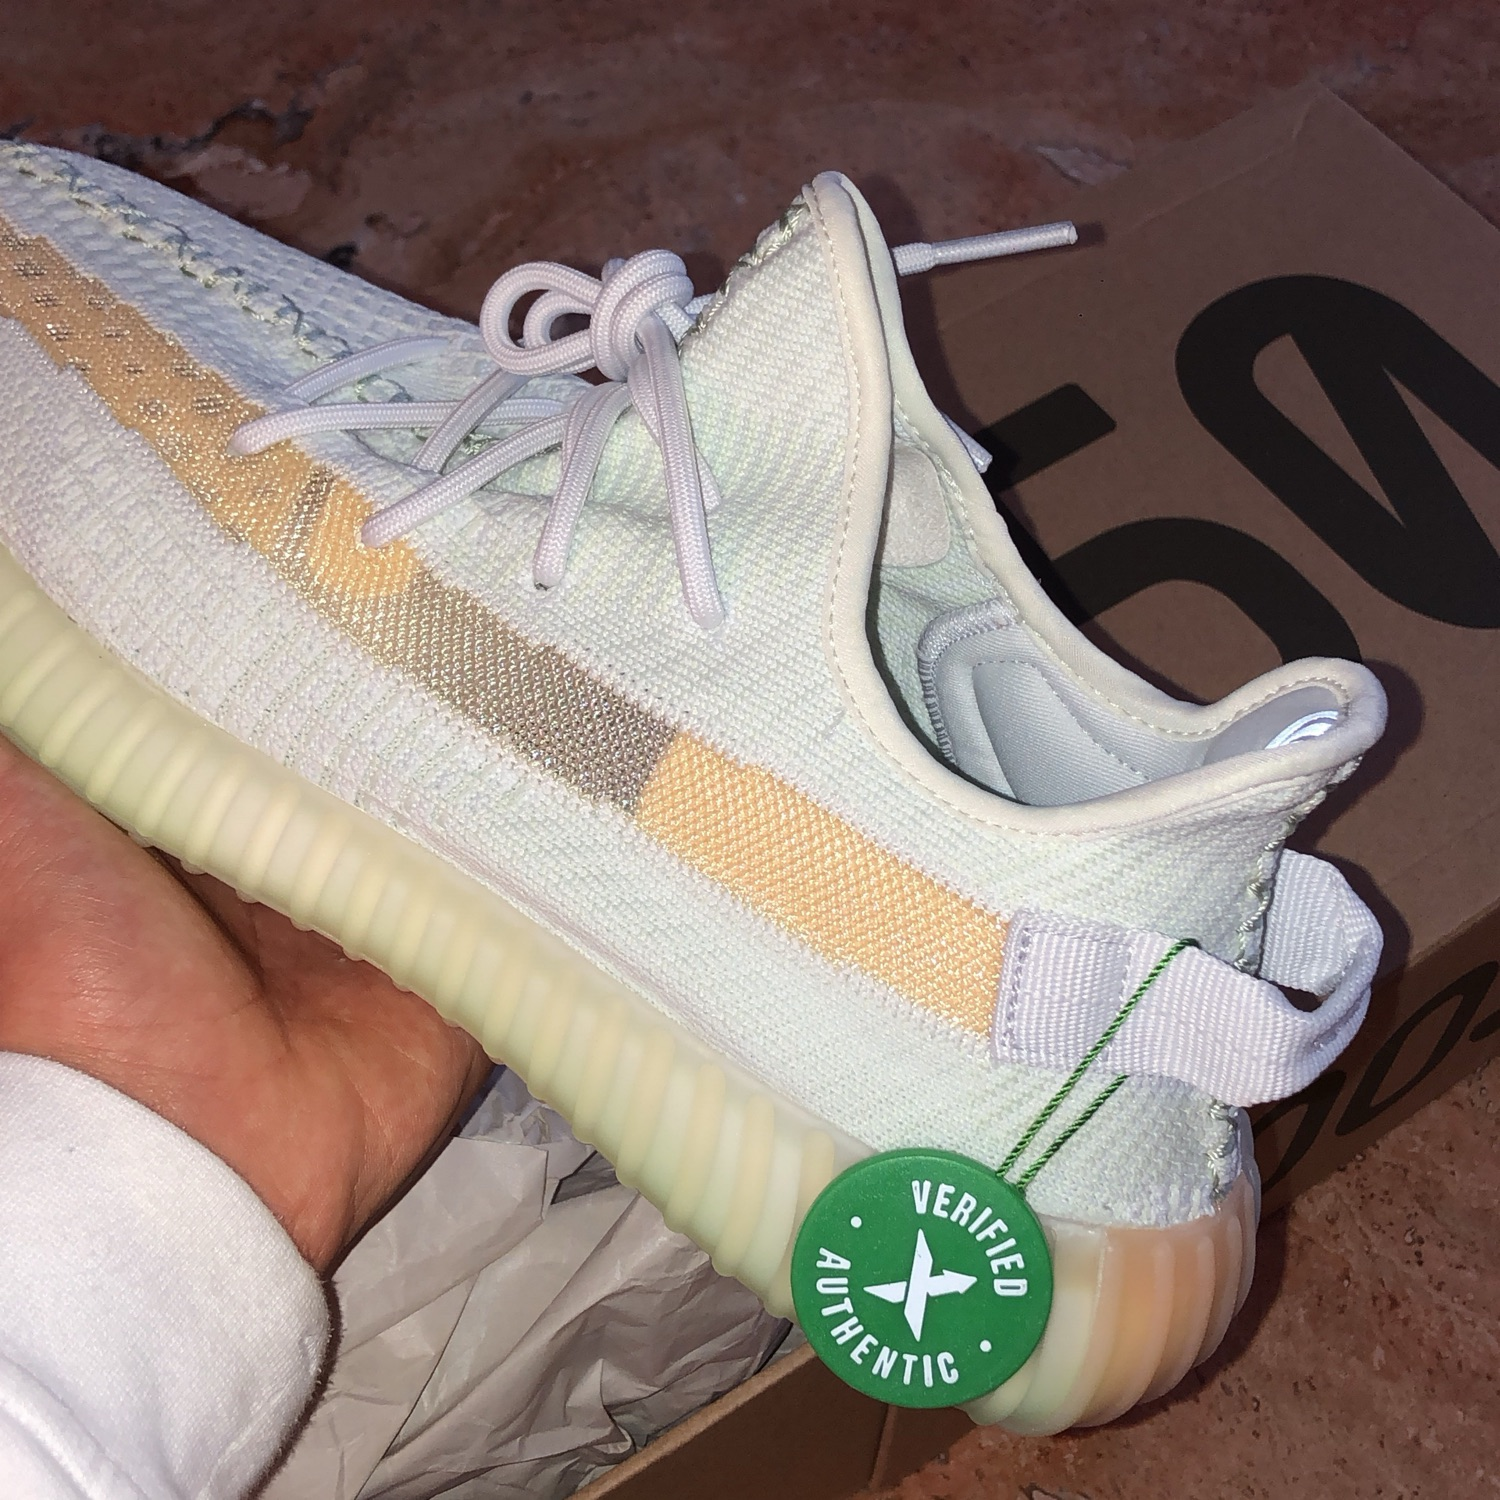 stockx yeezy hyperspace Shop Clothing